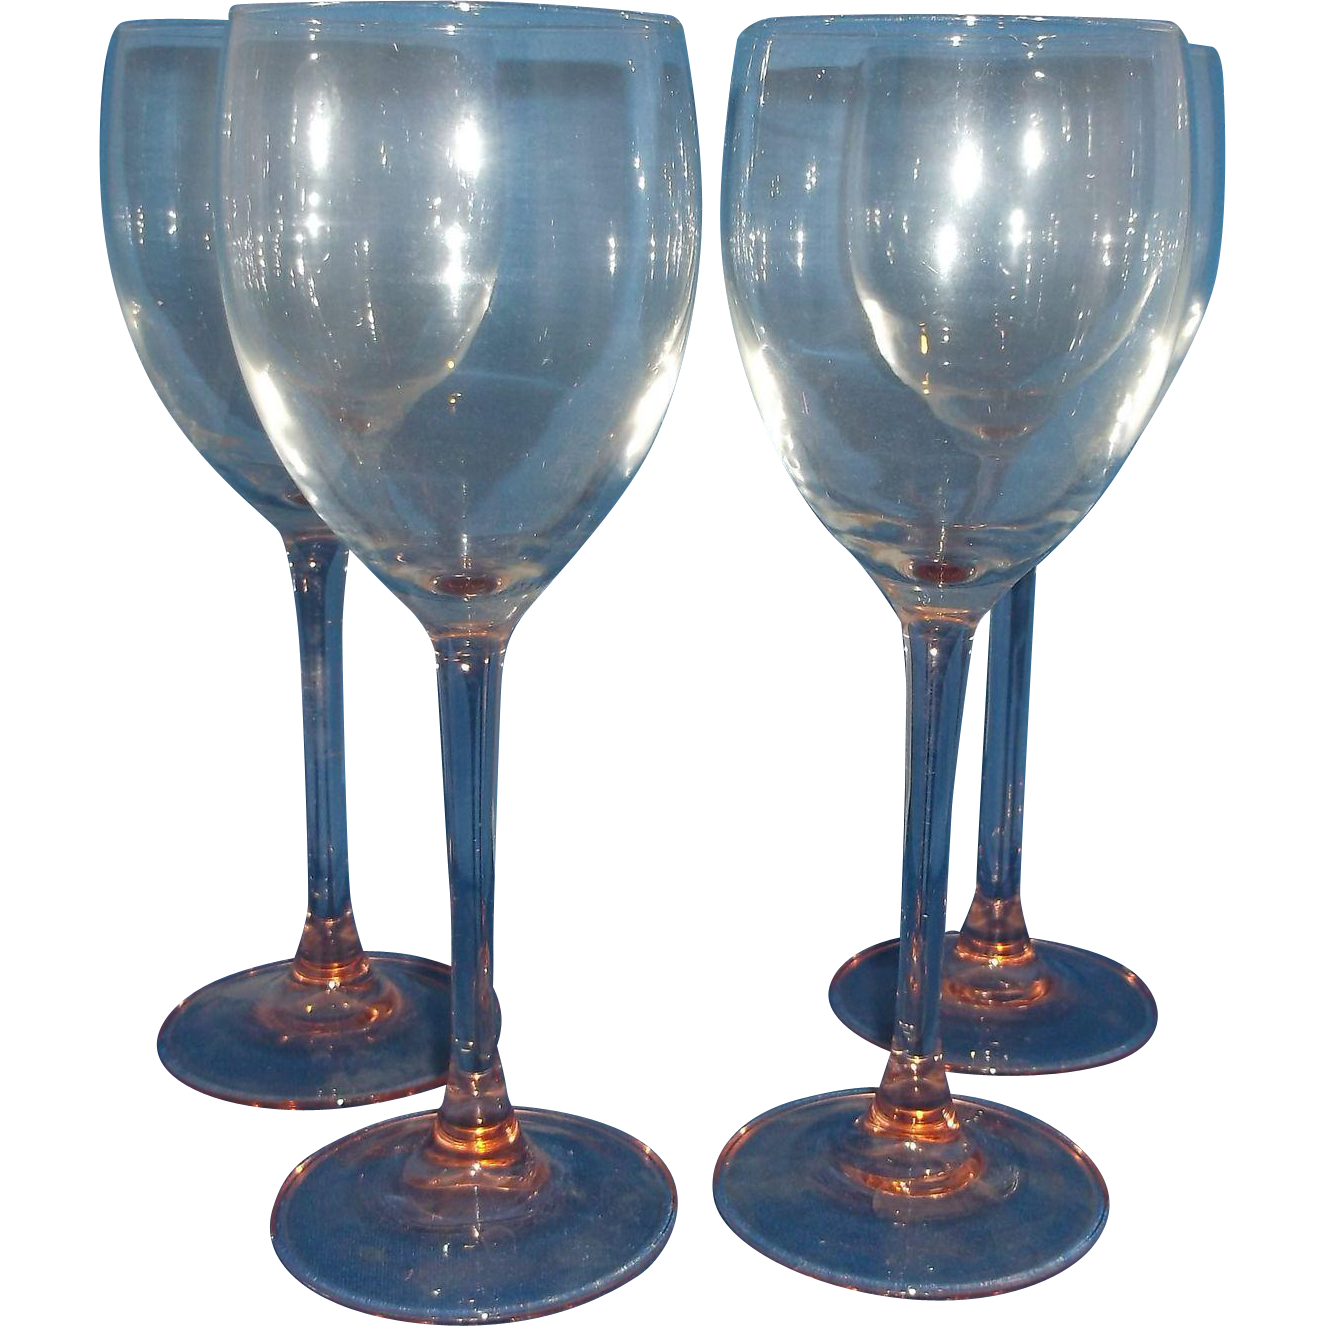 Luminarc Rose Pink Goblets Stems Set of 4 Arcoroc France Glass Claret Wine 7 3/4